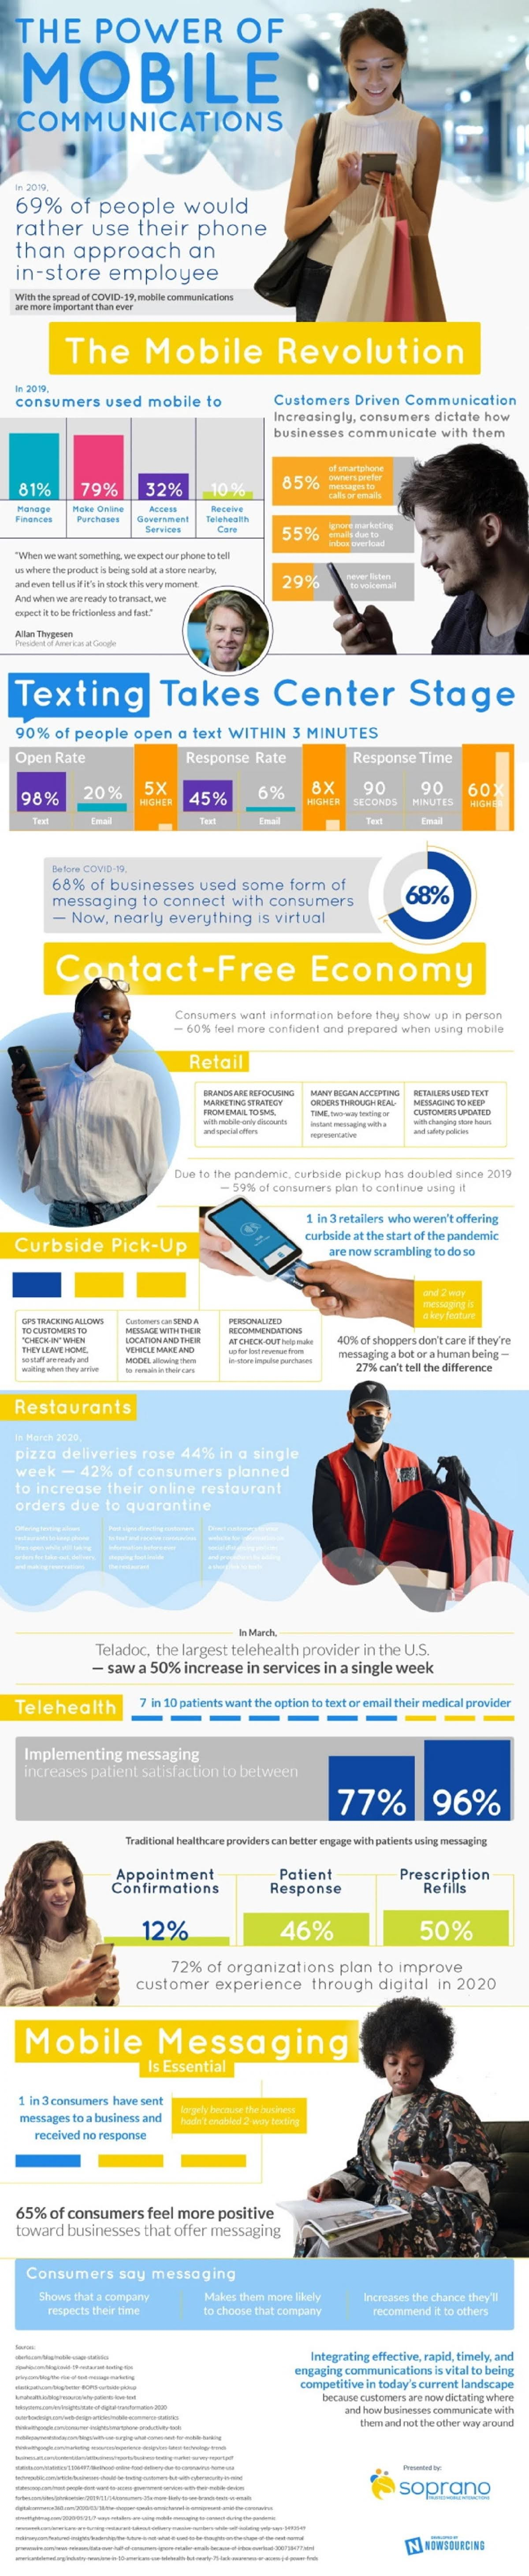 the-power-of-mobile-messaging-infographic